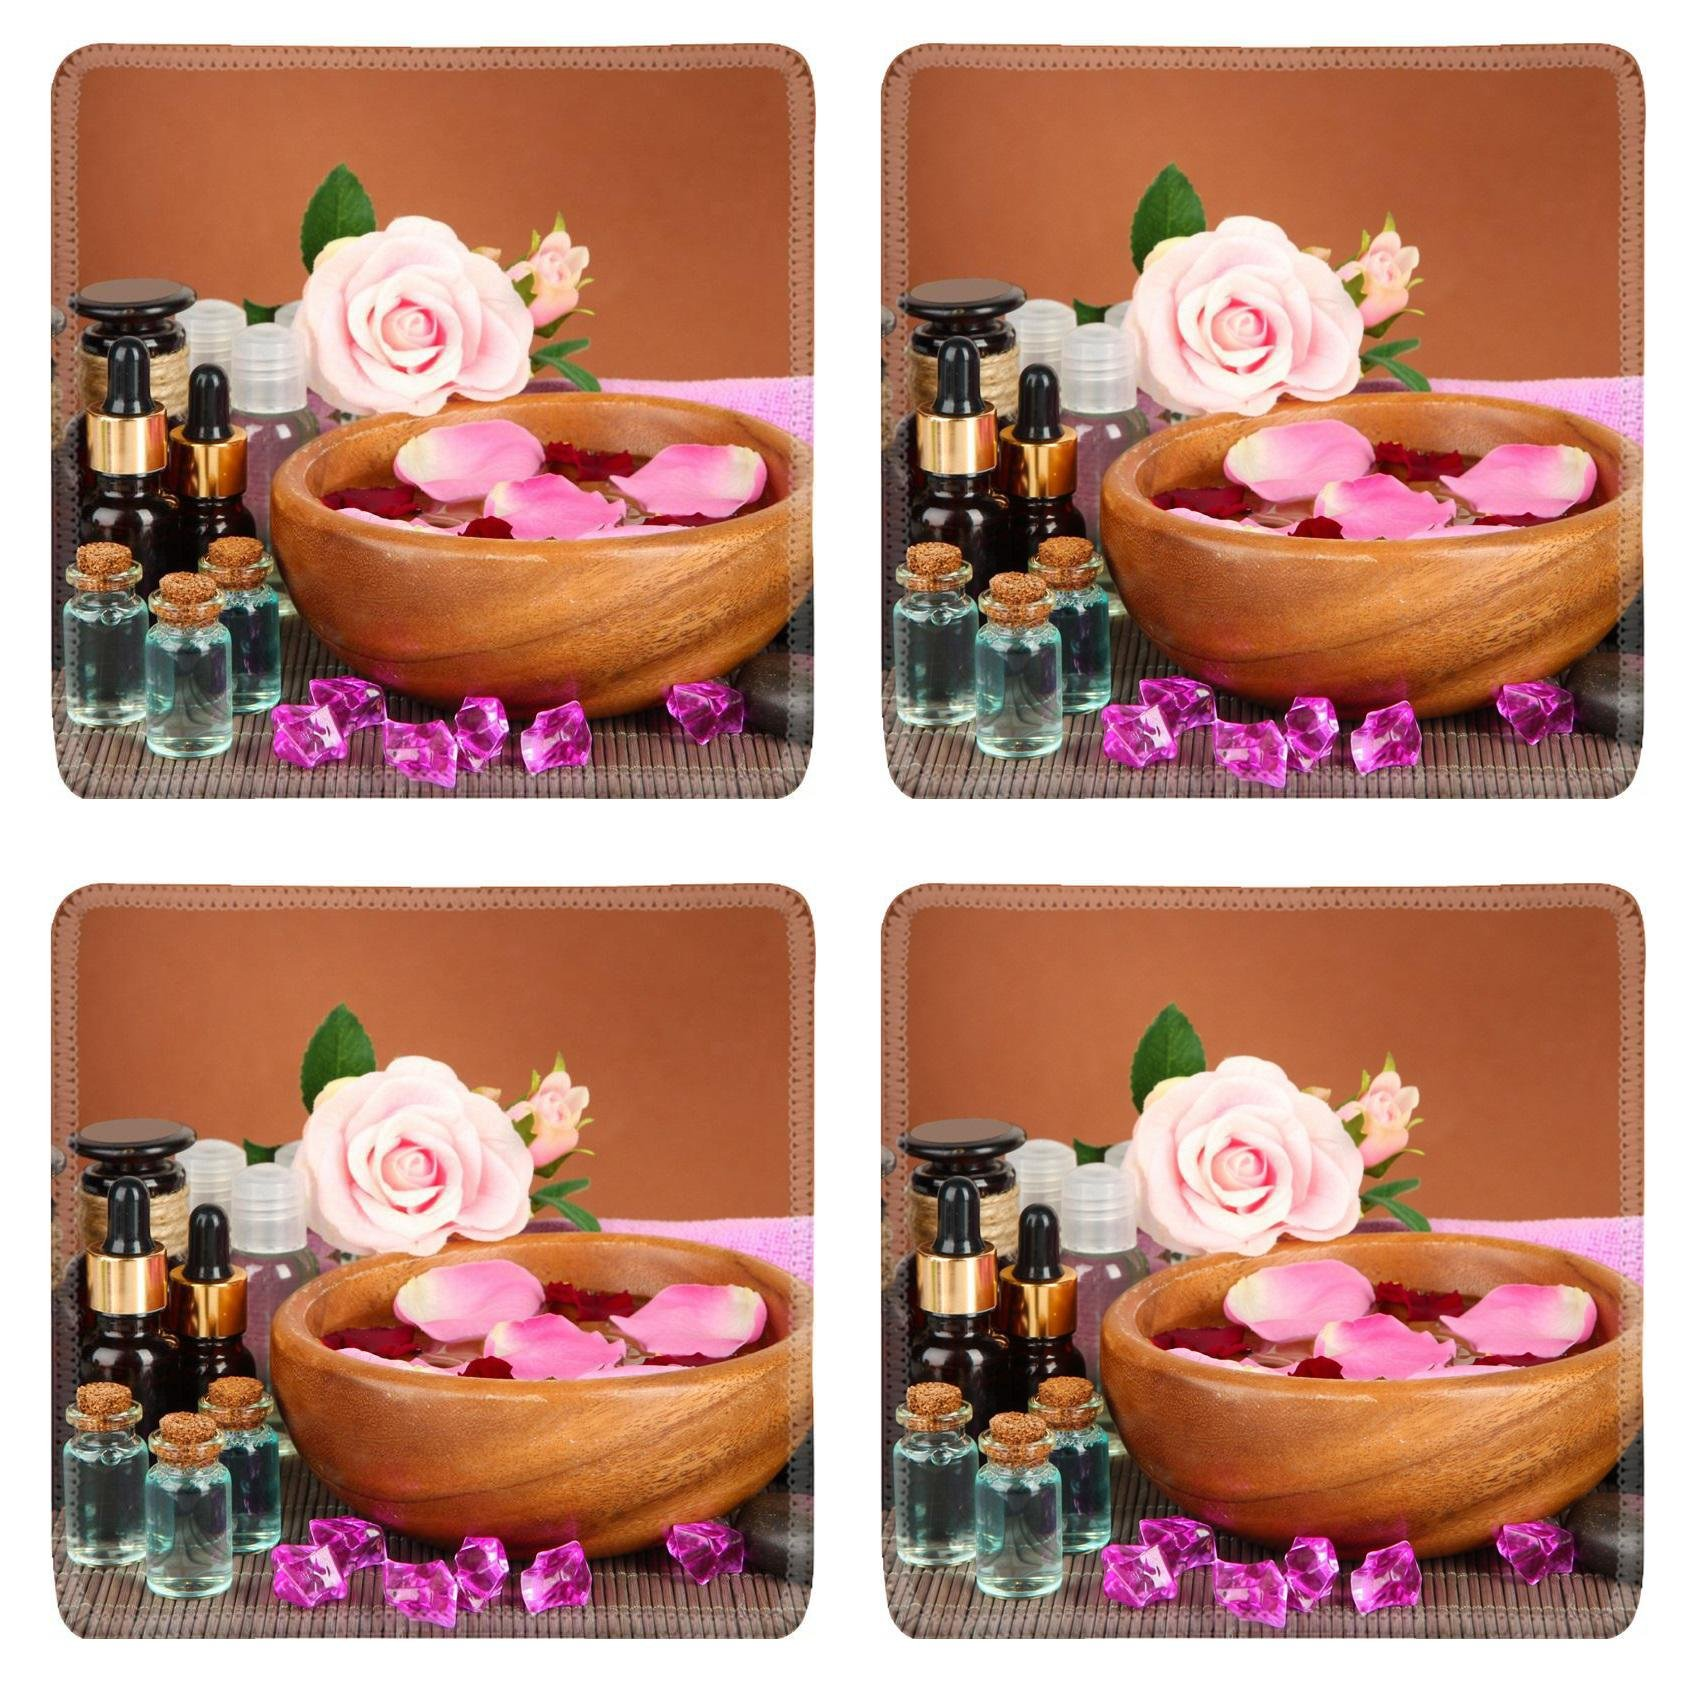 MSD Square Coasters Non-Slip Natural Rubber Desk Coasters design 19764017 Spa composition with aroma oils on brown background by MSD (Image #1)